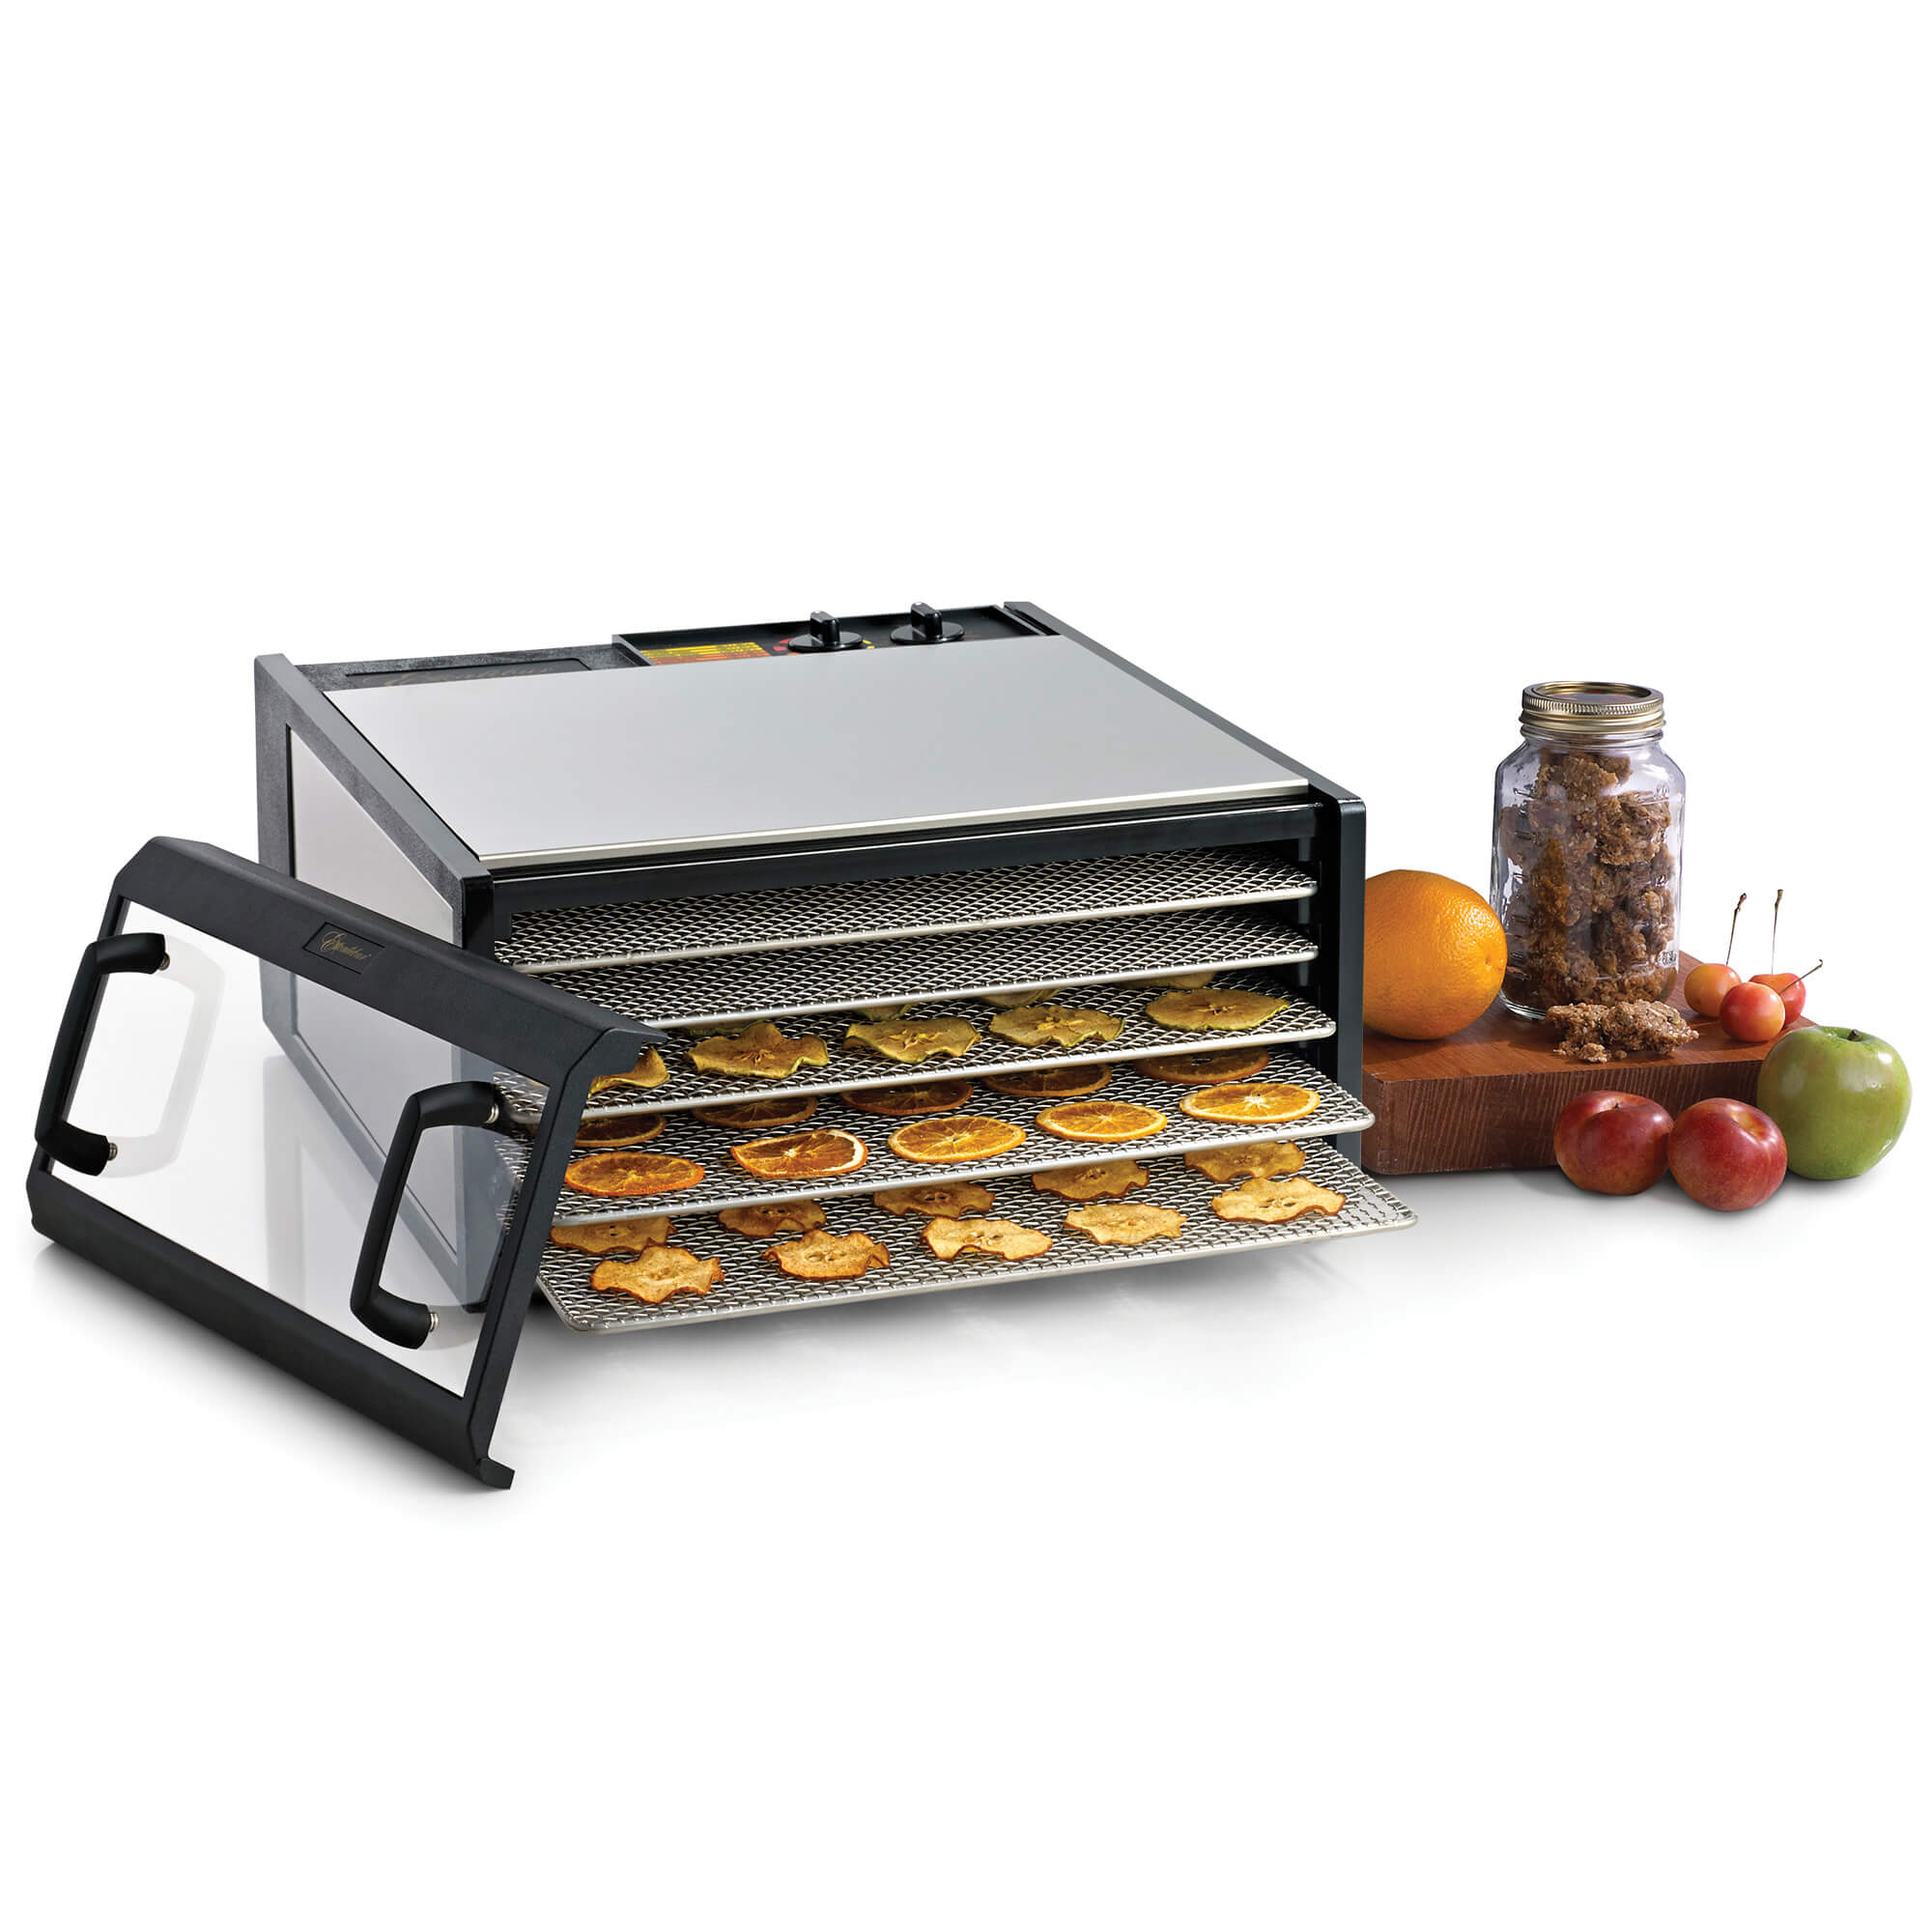 Excalibur D502CDSHD 5 tray stainless steel dehydrator with clear door propped to the side and food on the trays.